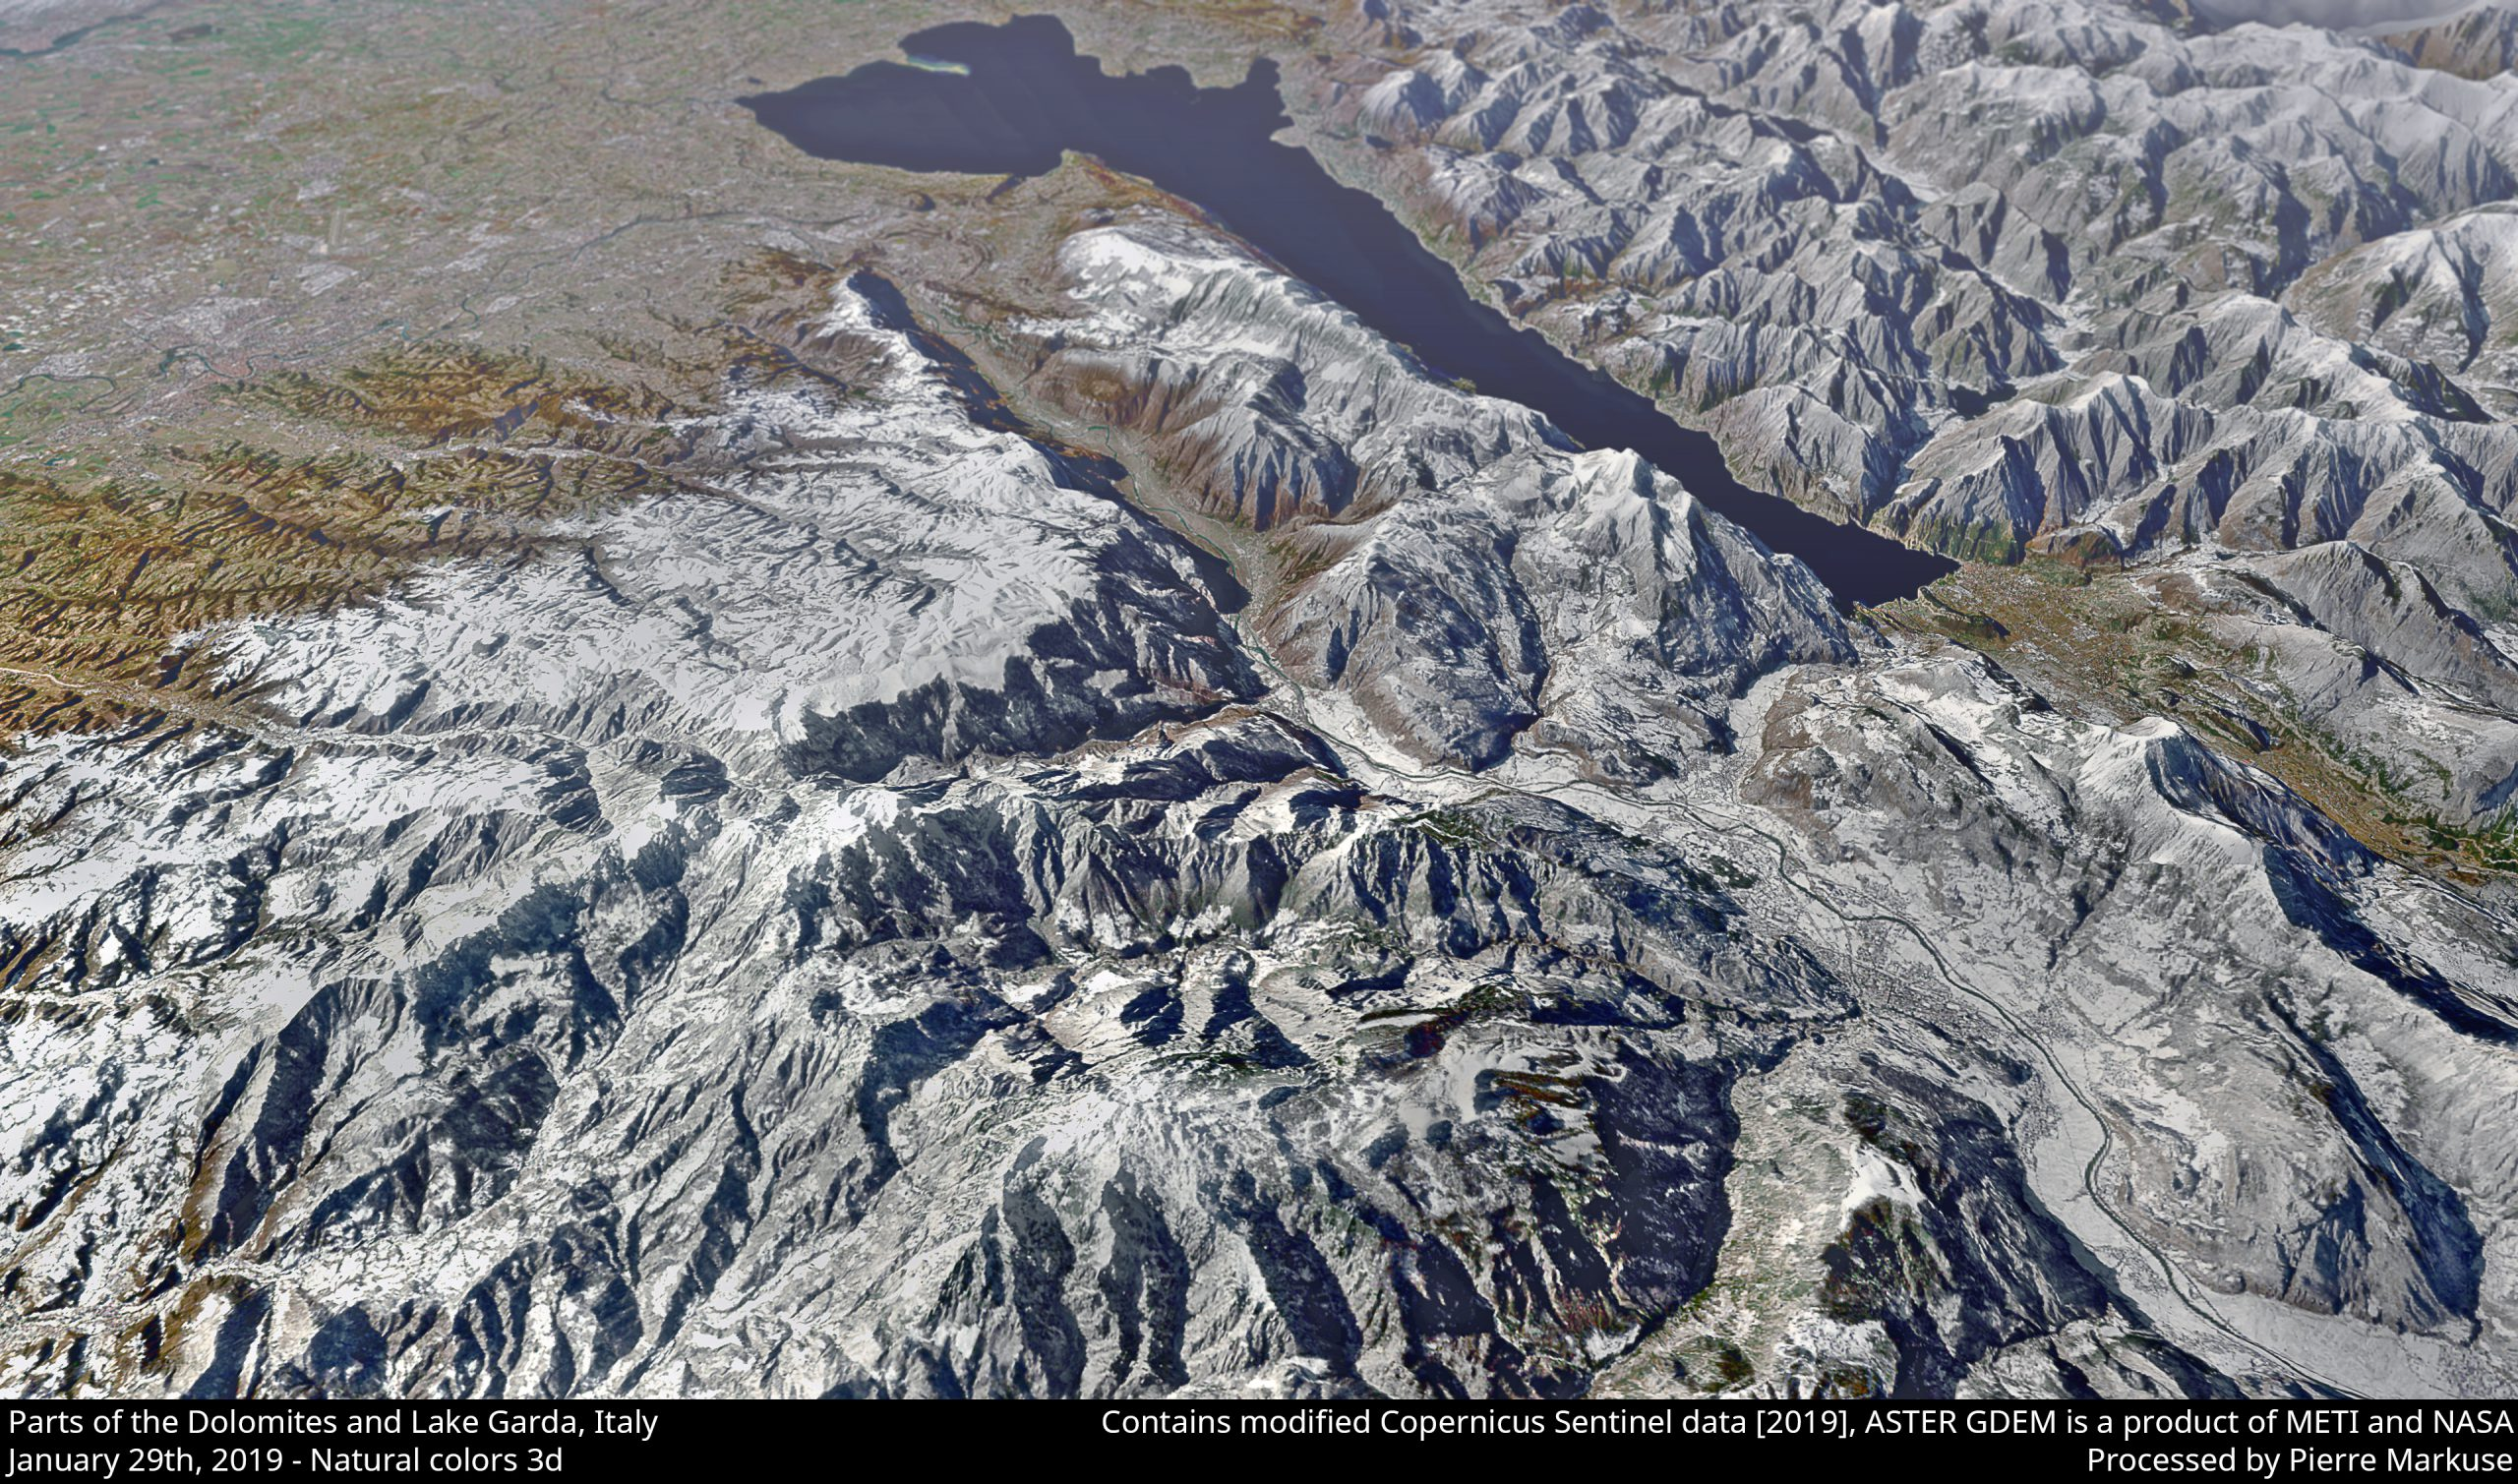 Parts of the Dolomites and Lake Garda, Italy - 3d view - Copernicus/Pierre Markuse